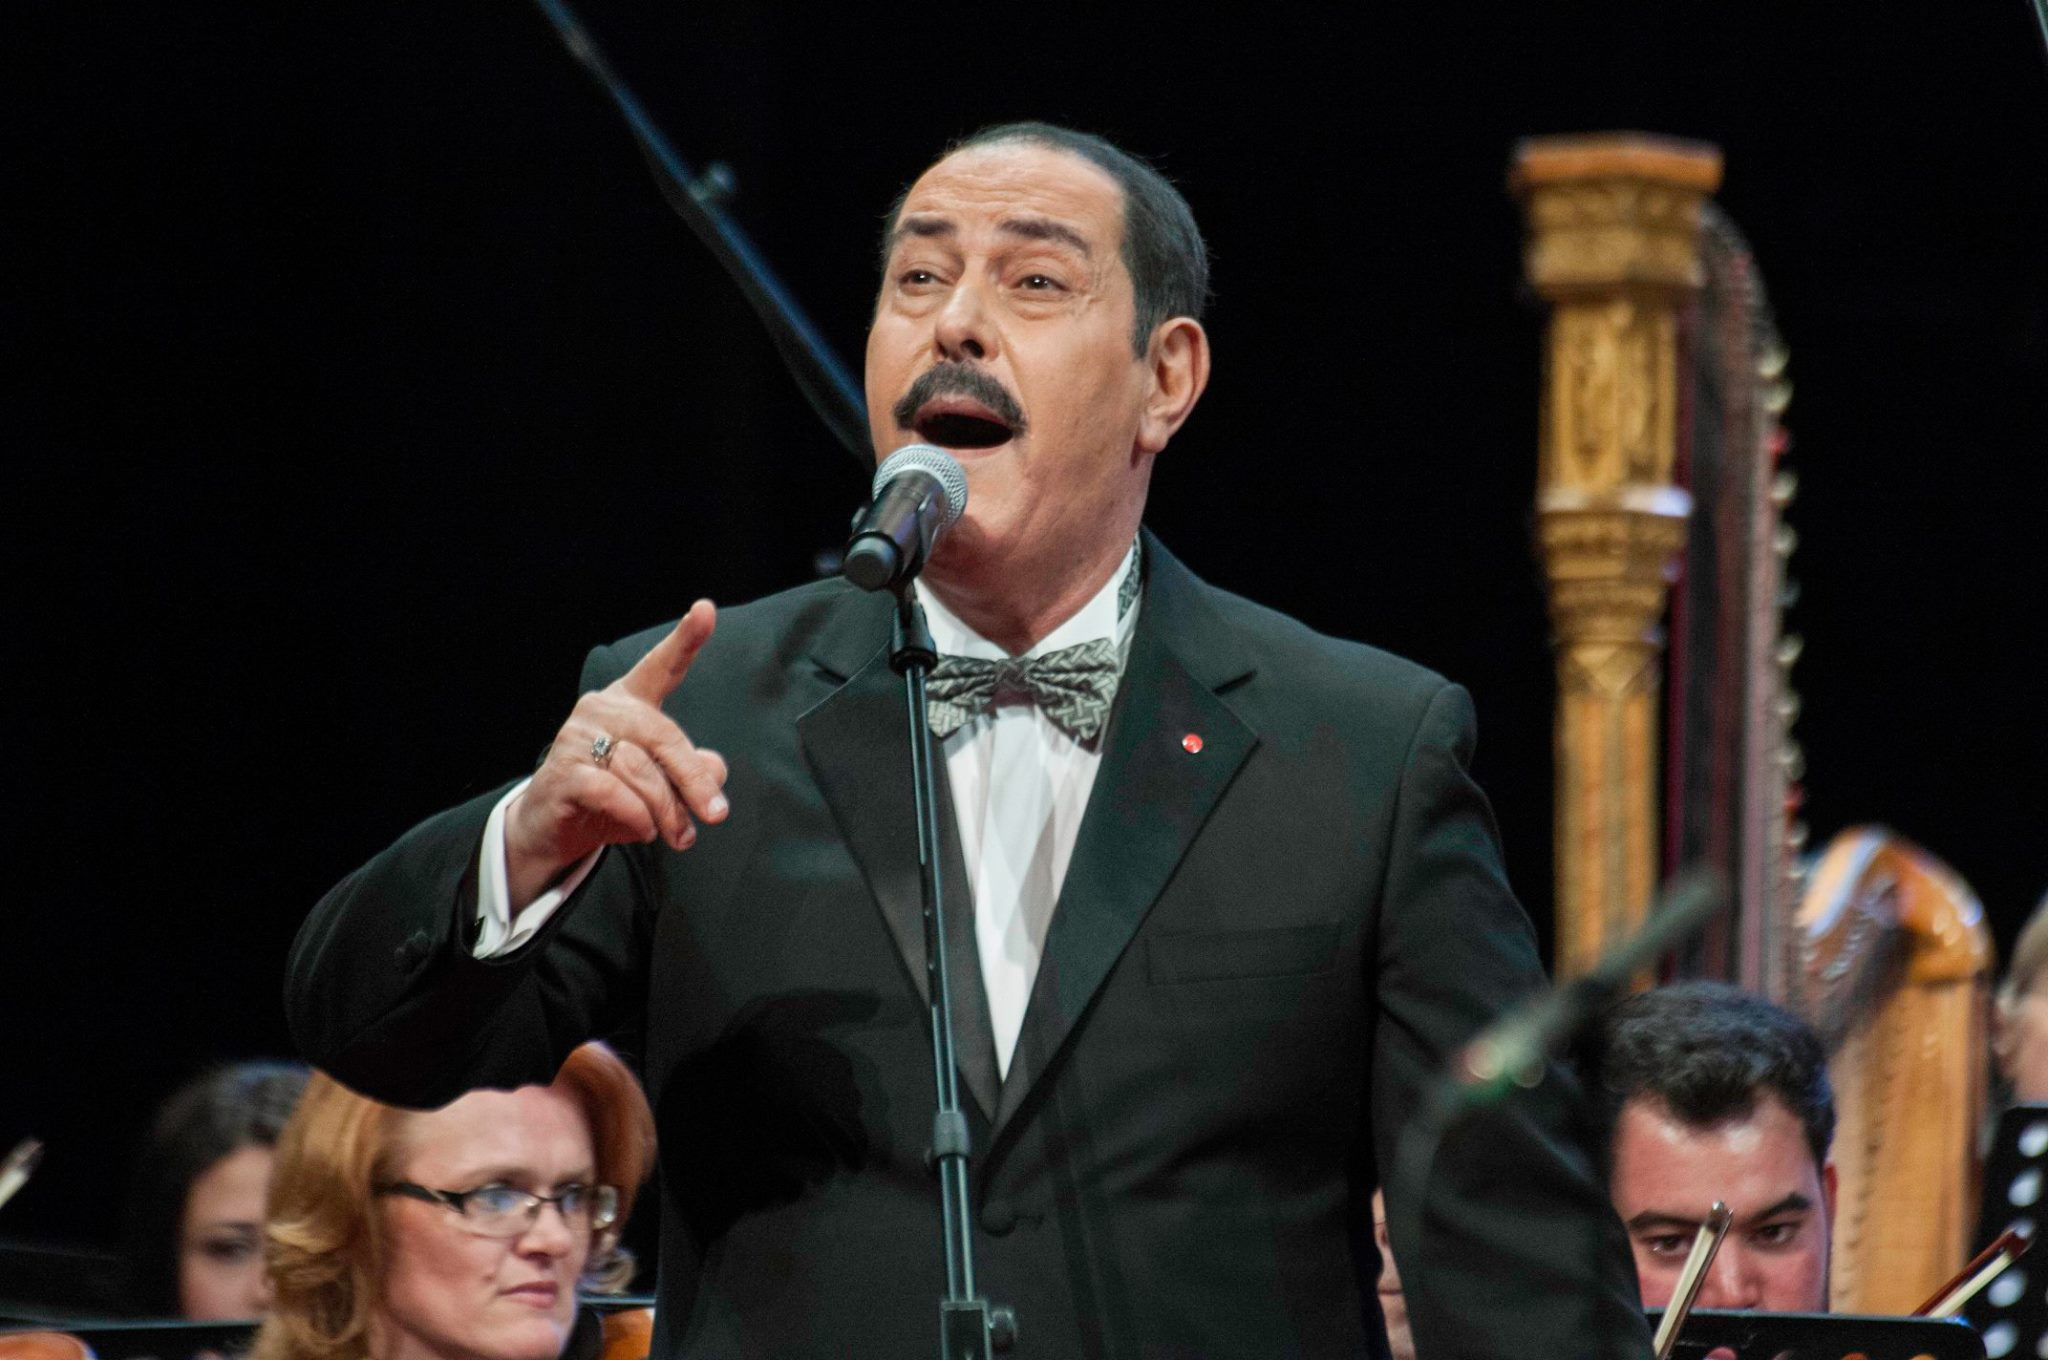 Tunisian singer Lotfi Bouchnak performs at the opening concert of the City of Culture in Tunis. 	  (City of Culture)